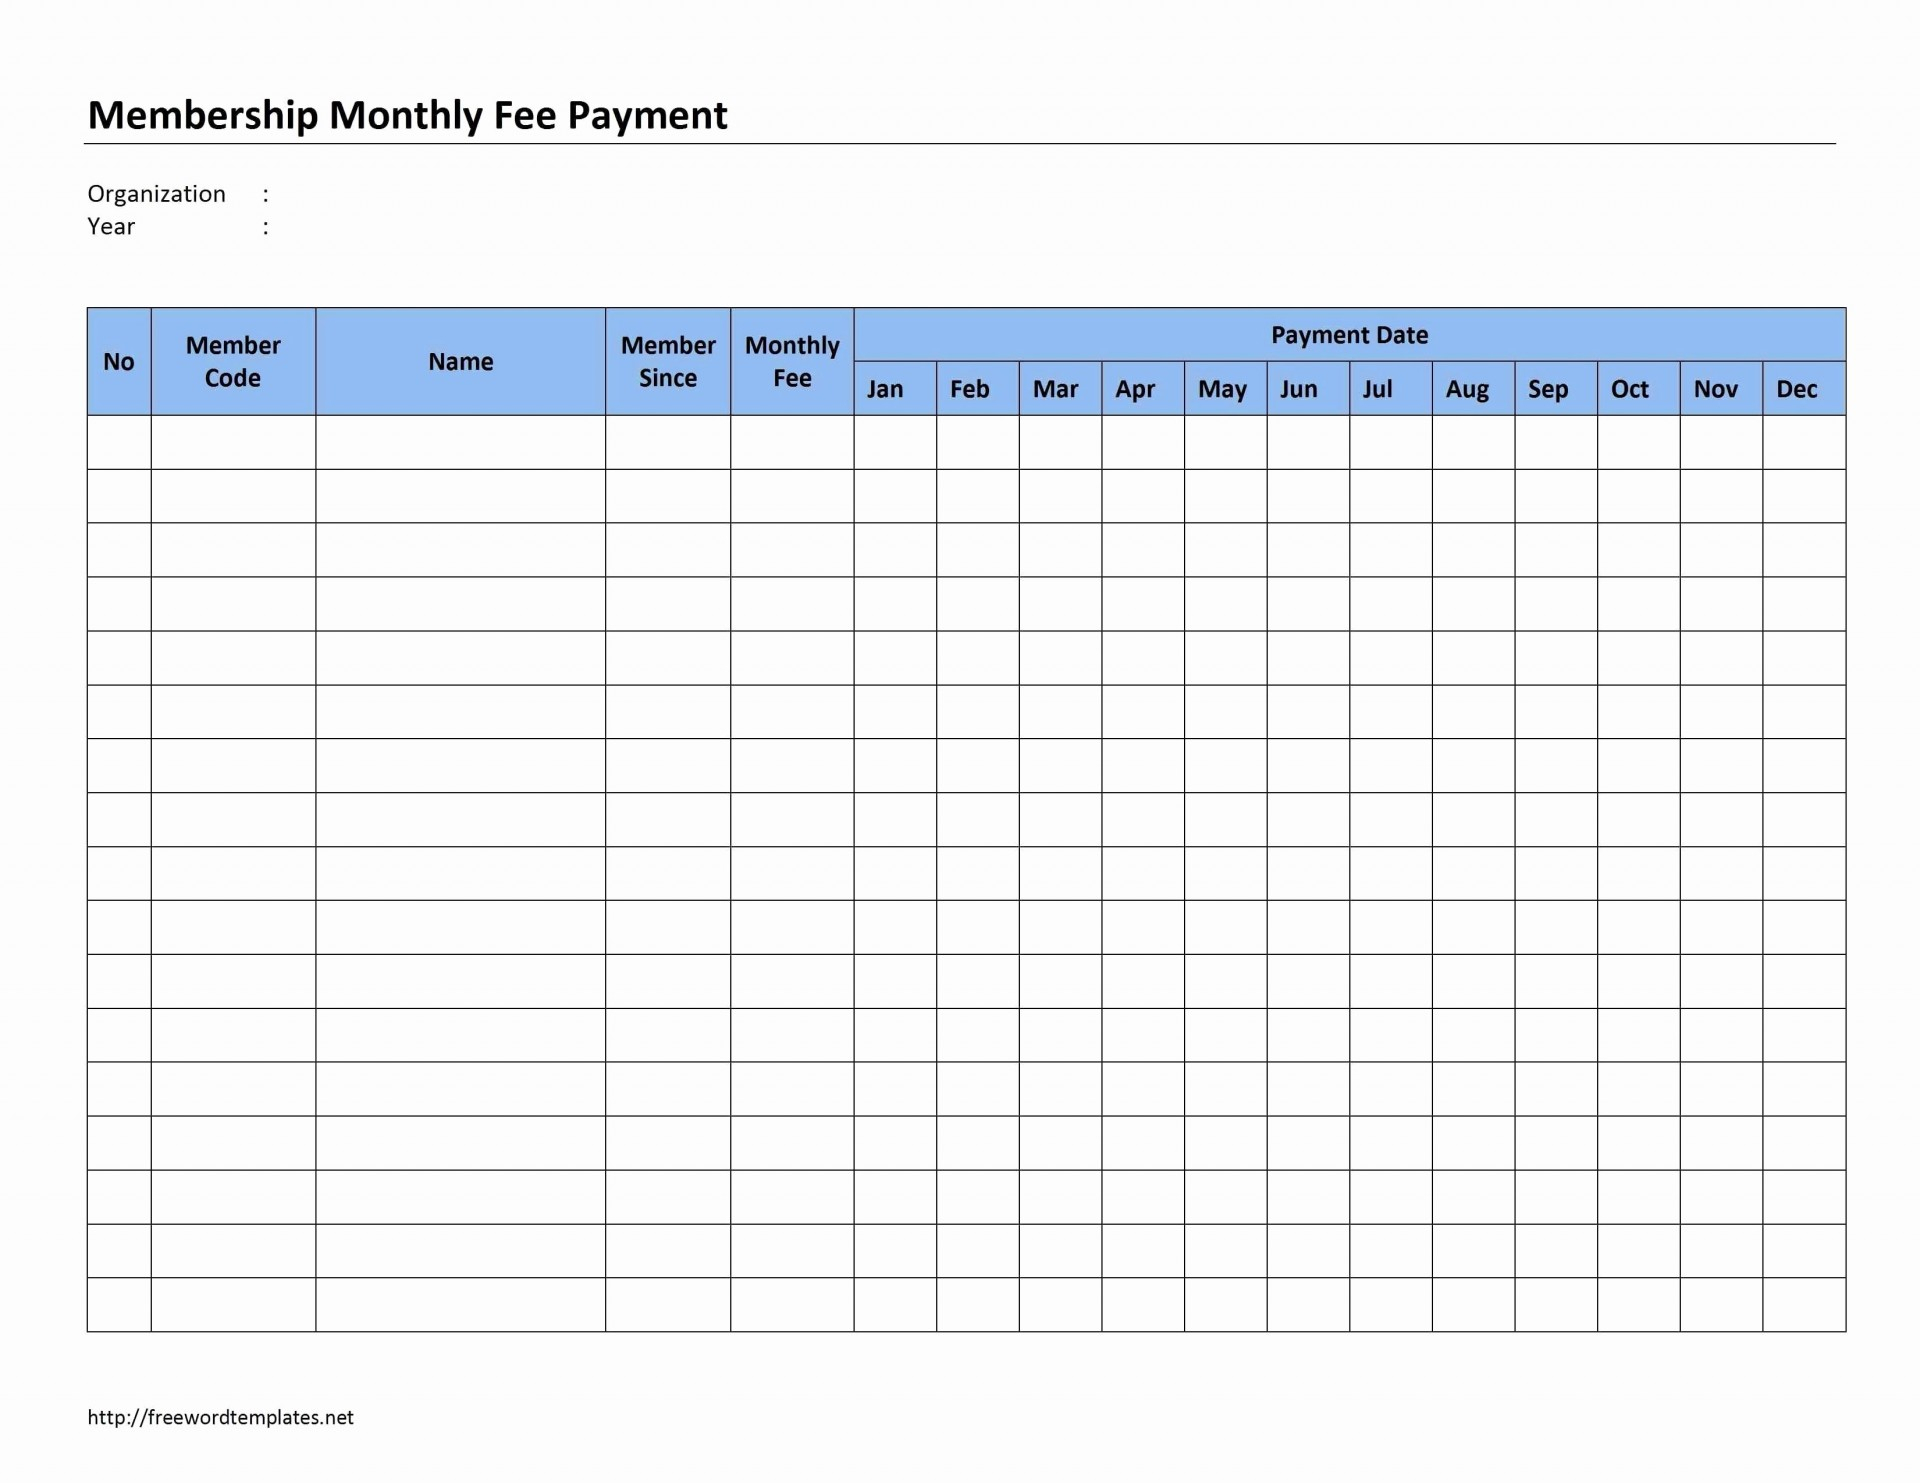 001 Template Ideas Monthly Bill Organizer Excel Free throughout Printable Bill Organizer